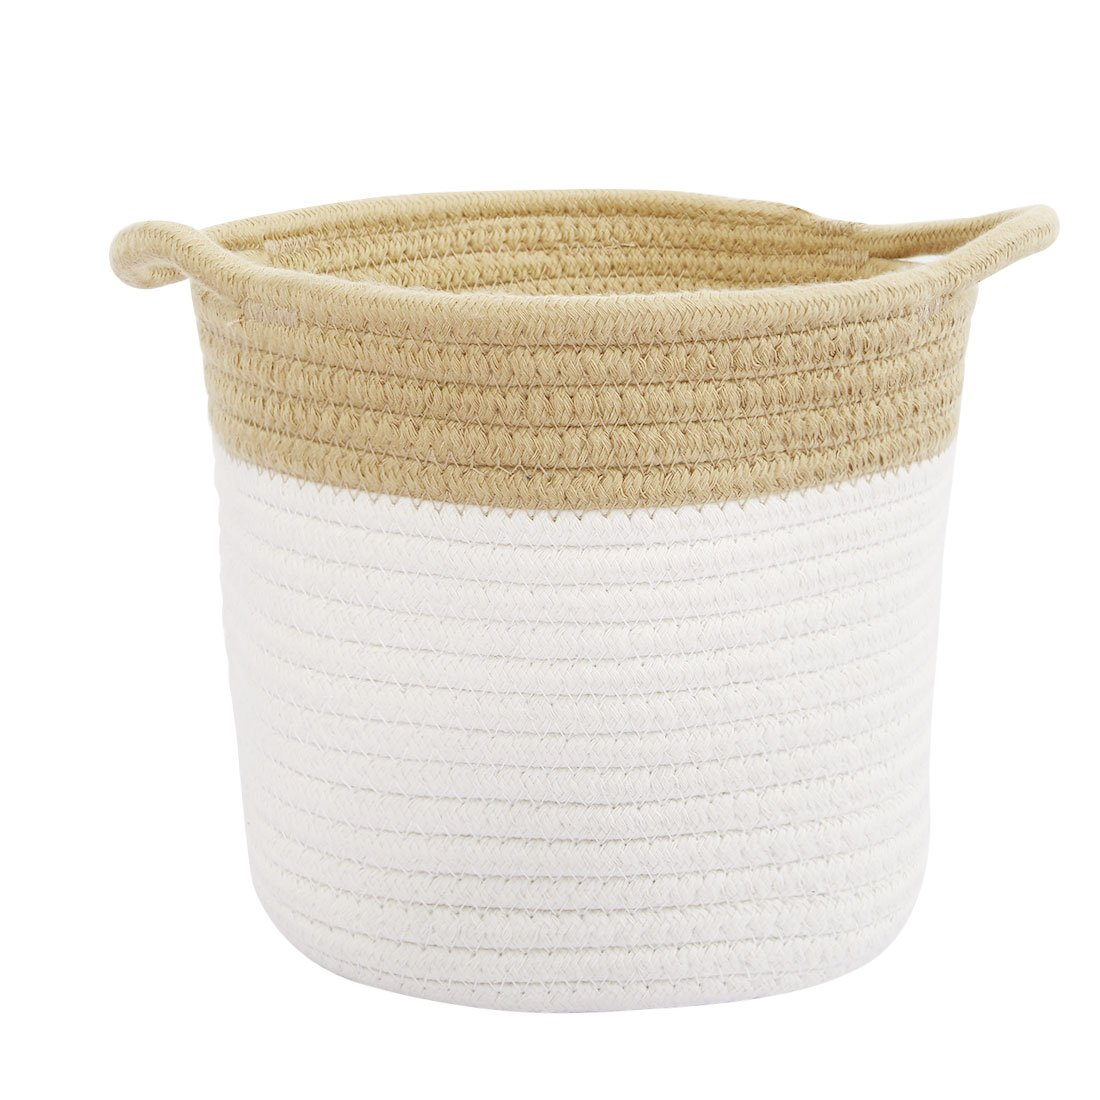 uxcell Collapsible Home Accessories Cotton Rope Storage Basket with Handles, 6.3 x 7,Woven Baskets for Laundry Towel, Toy Storage Bin for Office Bedroom Closet (Khaki,Cylindrical 1) 6.3 x 7 a17051900ux0659